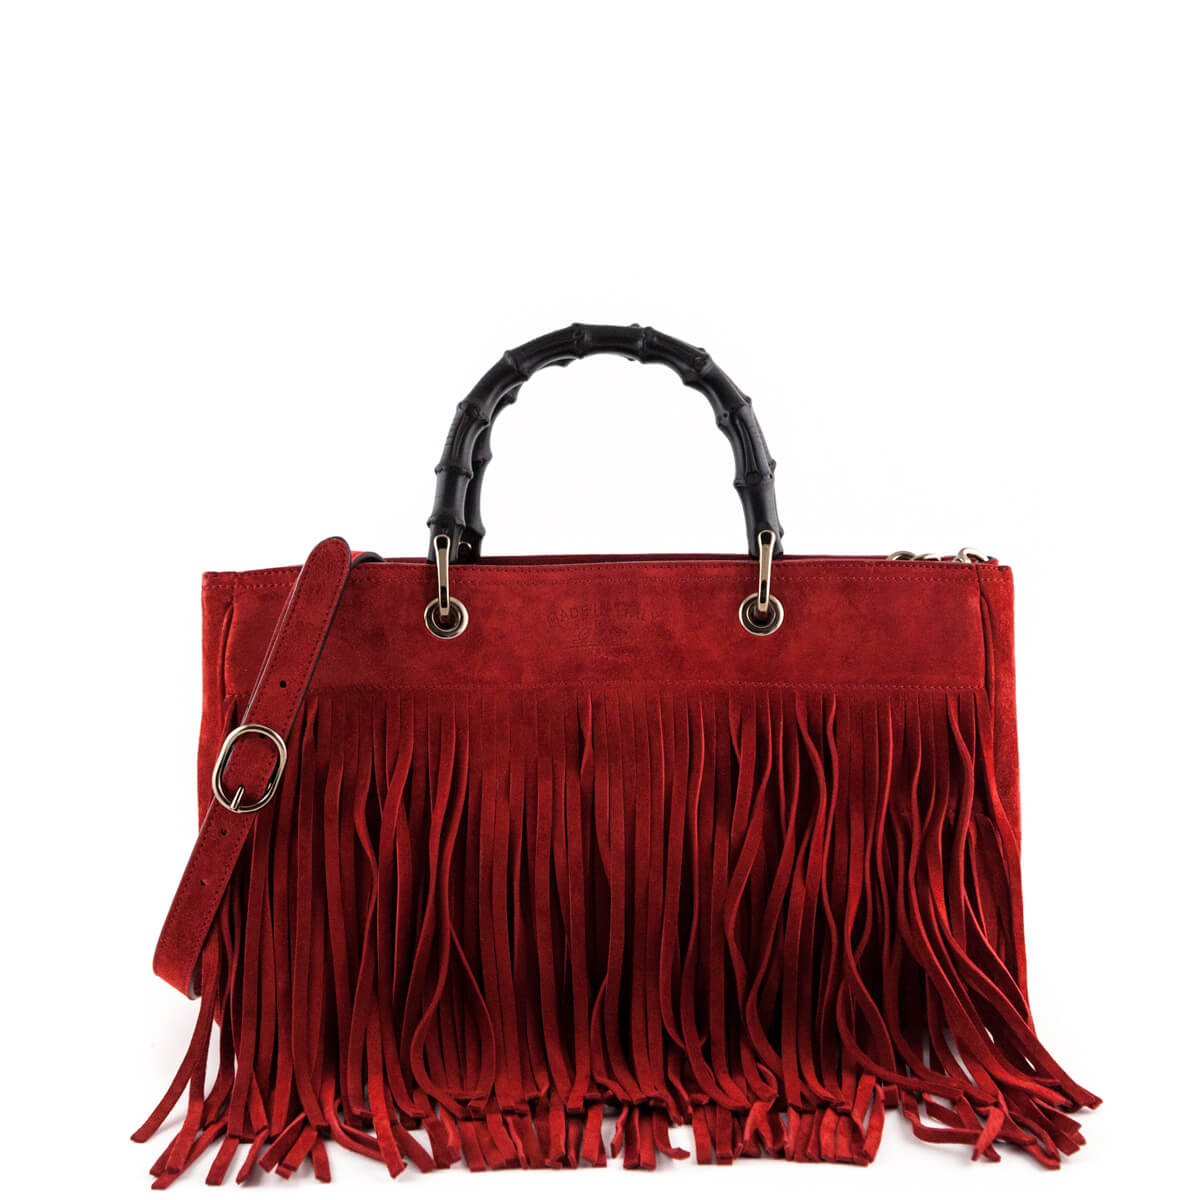 2bf6f38652fc Gucci Red Suede Bamboo Fringe Medium Shopper Tote - LOVE that BAG -  Preowned Authentic Designer ...